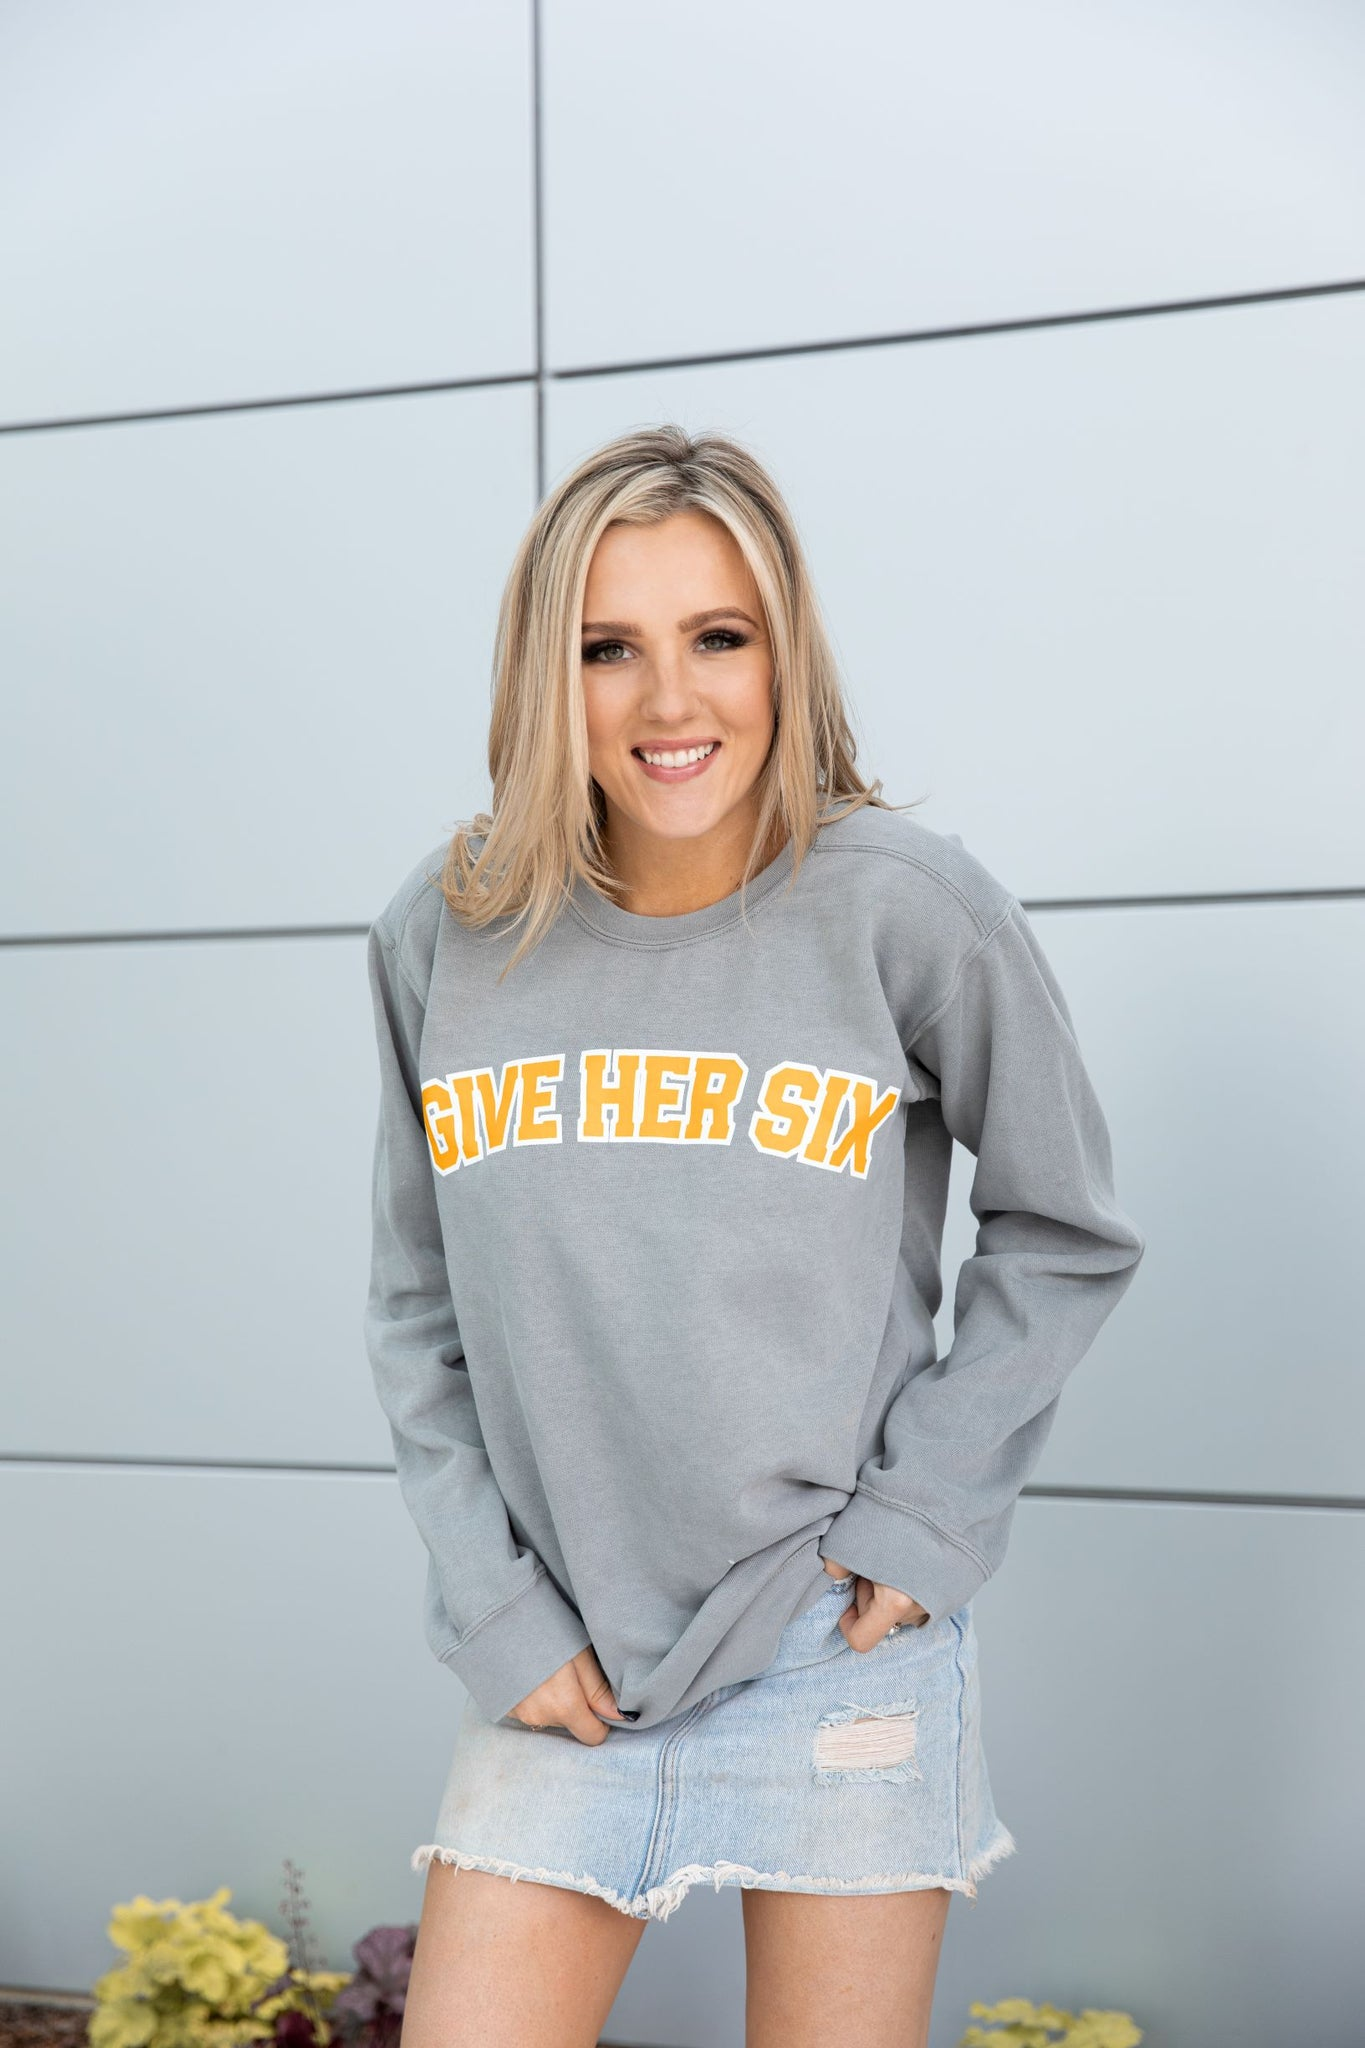 Give Her Six Sweatshirt